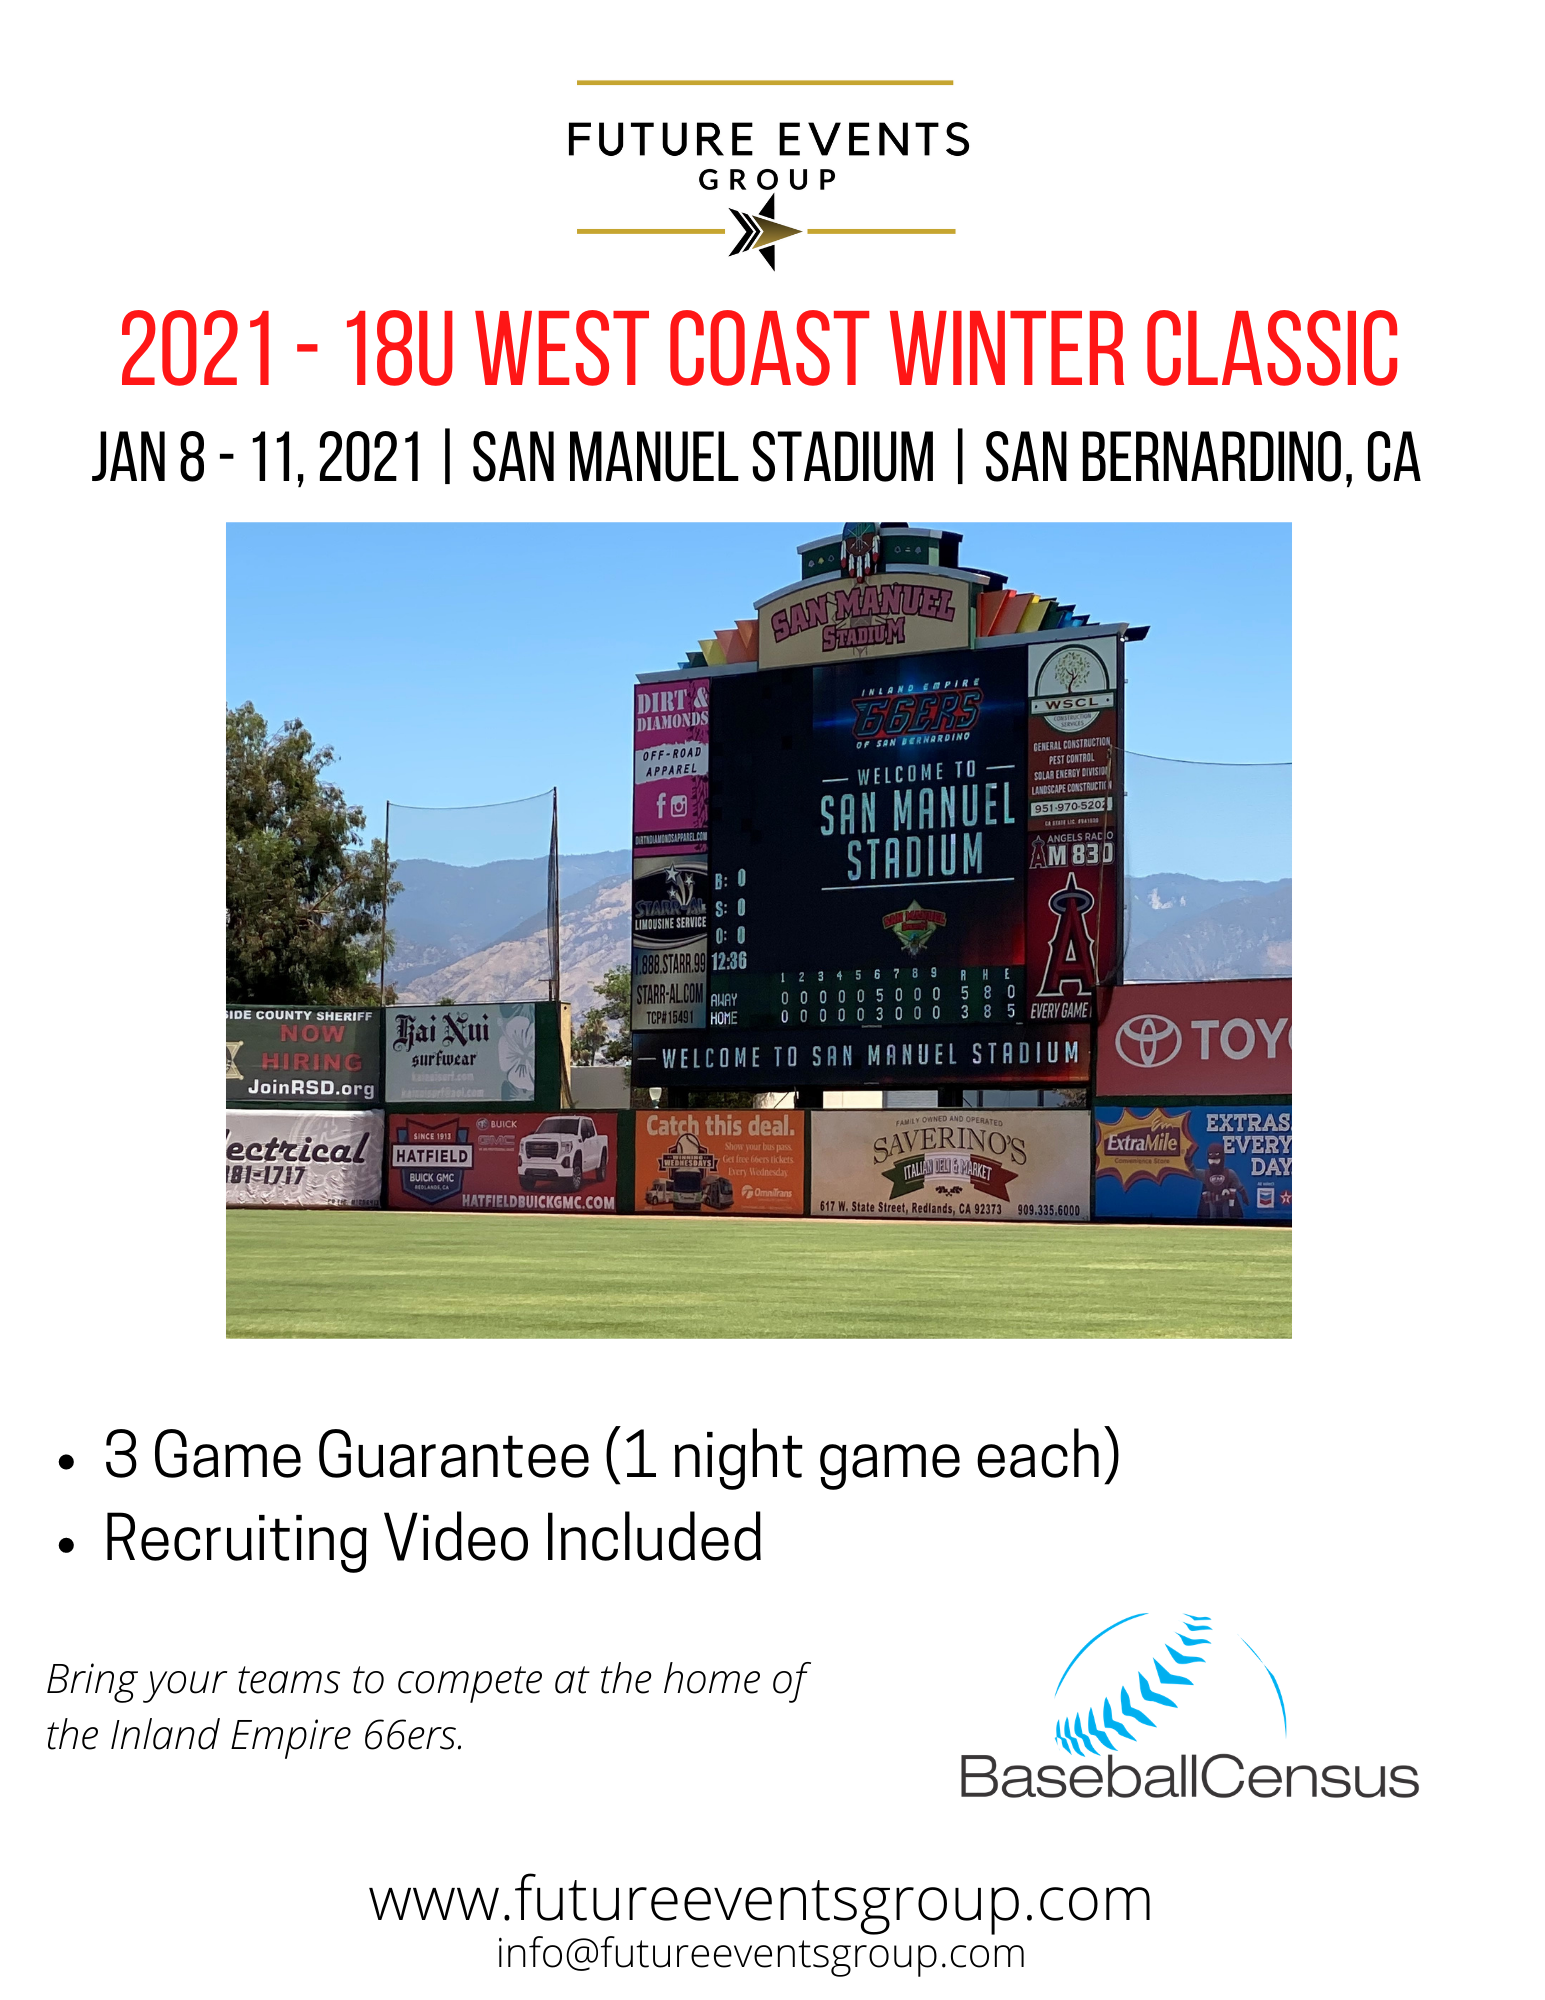 2021 West Coast Winter Classic - 18U Tournament